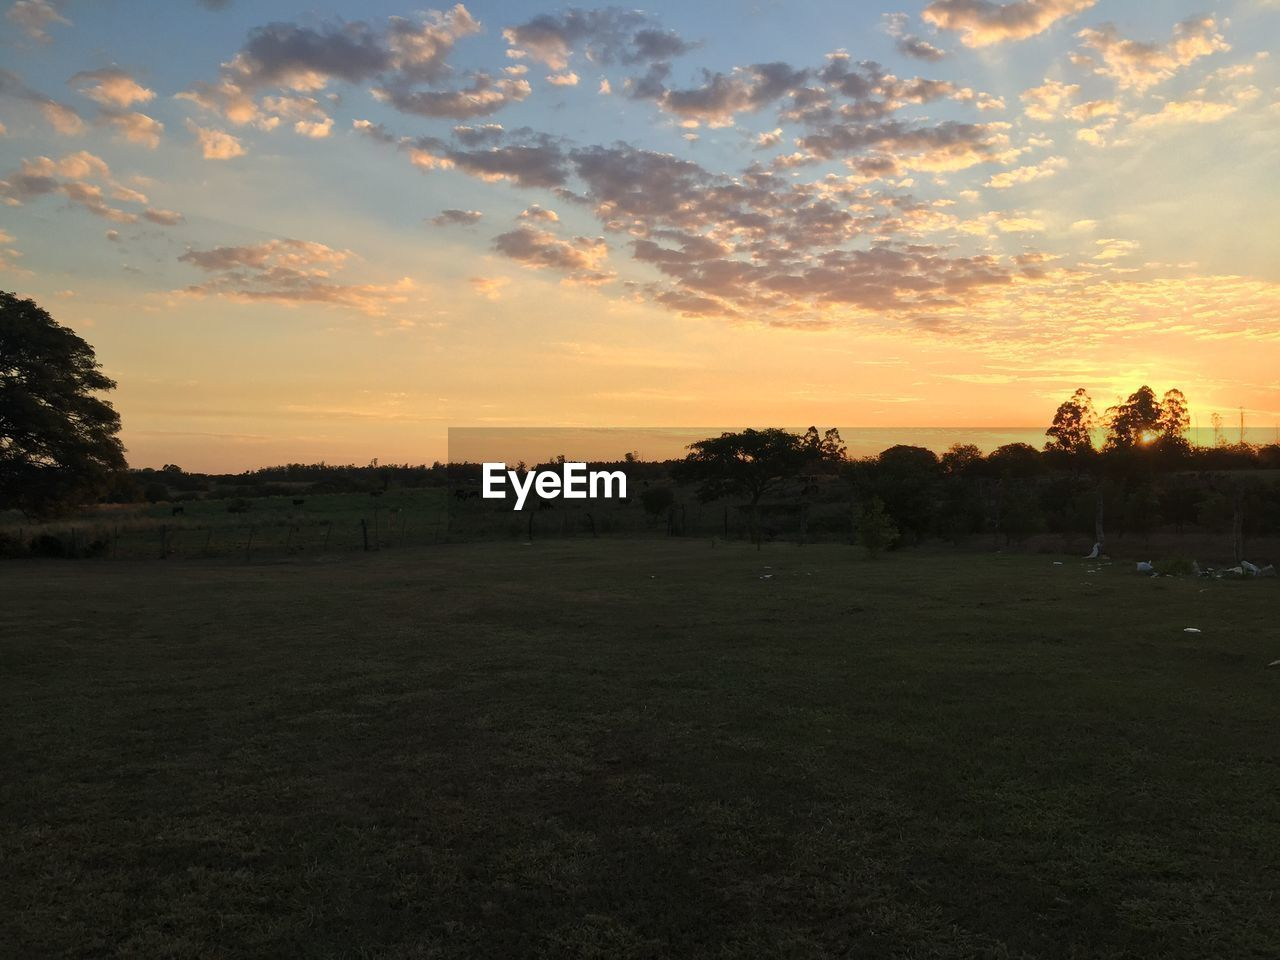 tree, sunset, nature, field, sky, beauty in nature, landscape, tranquility, tranquil scene, scenics, orange color, grass, no people, outdoors, growth, cloud - sky, golf course, sport, golf, day